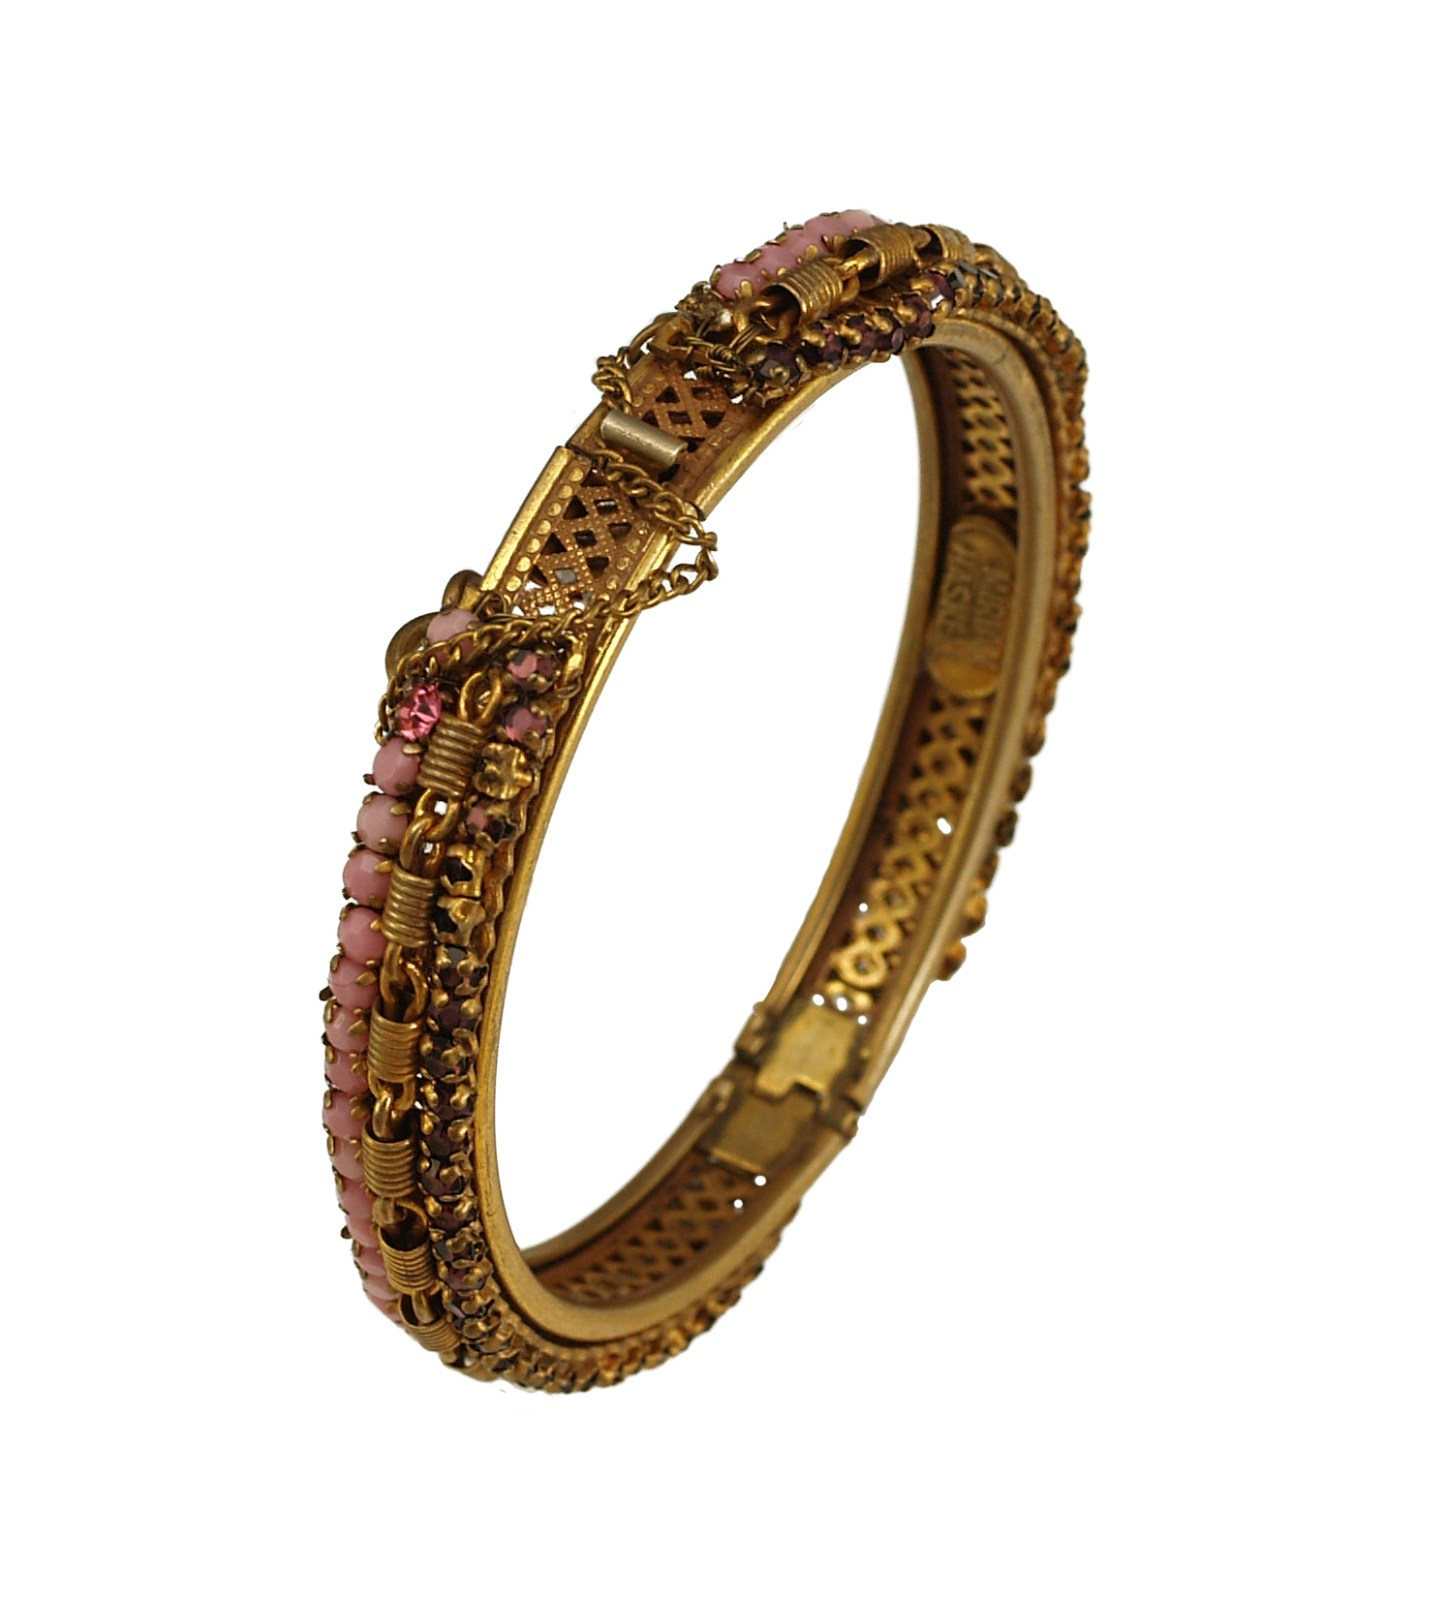 What Are Rhinestone Hinged Rings For